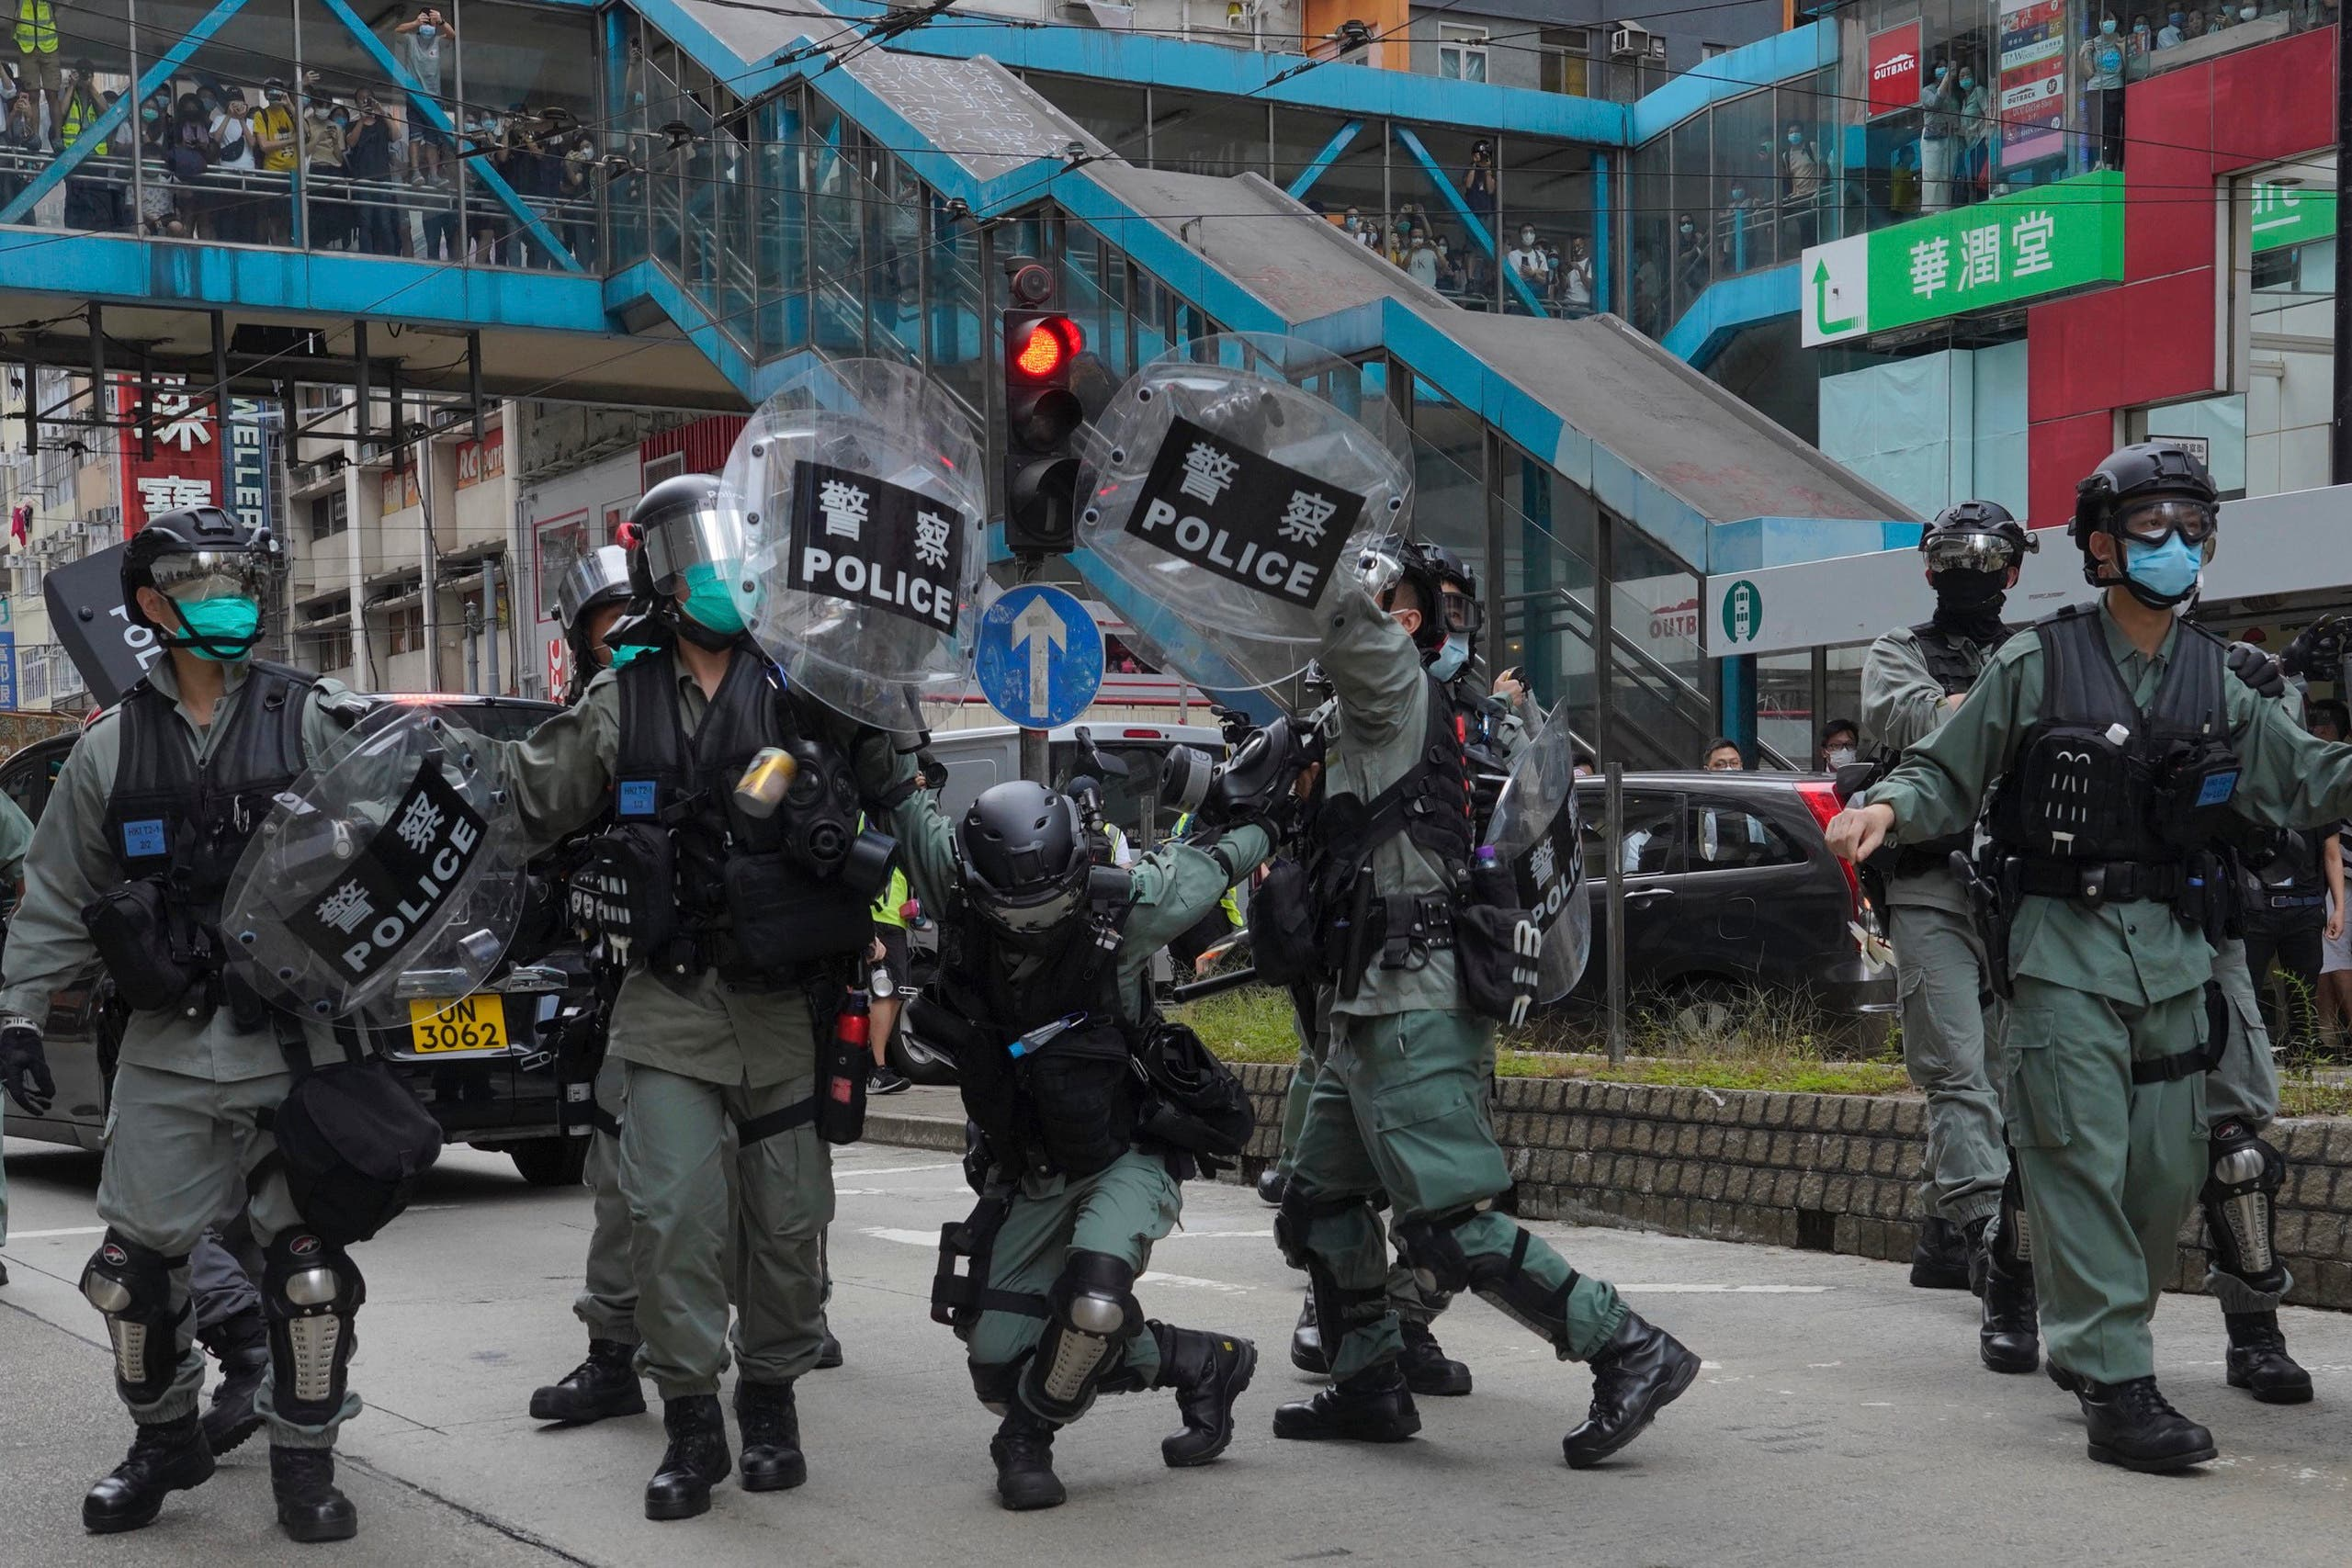 Riot police cover themselves with shields as hundreds of protesters march along a downtown street during a pro-democracy protest against Beijing's national security legislation in Hong Kong, on May 24, 2020. (AP)